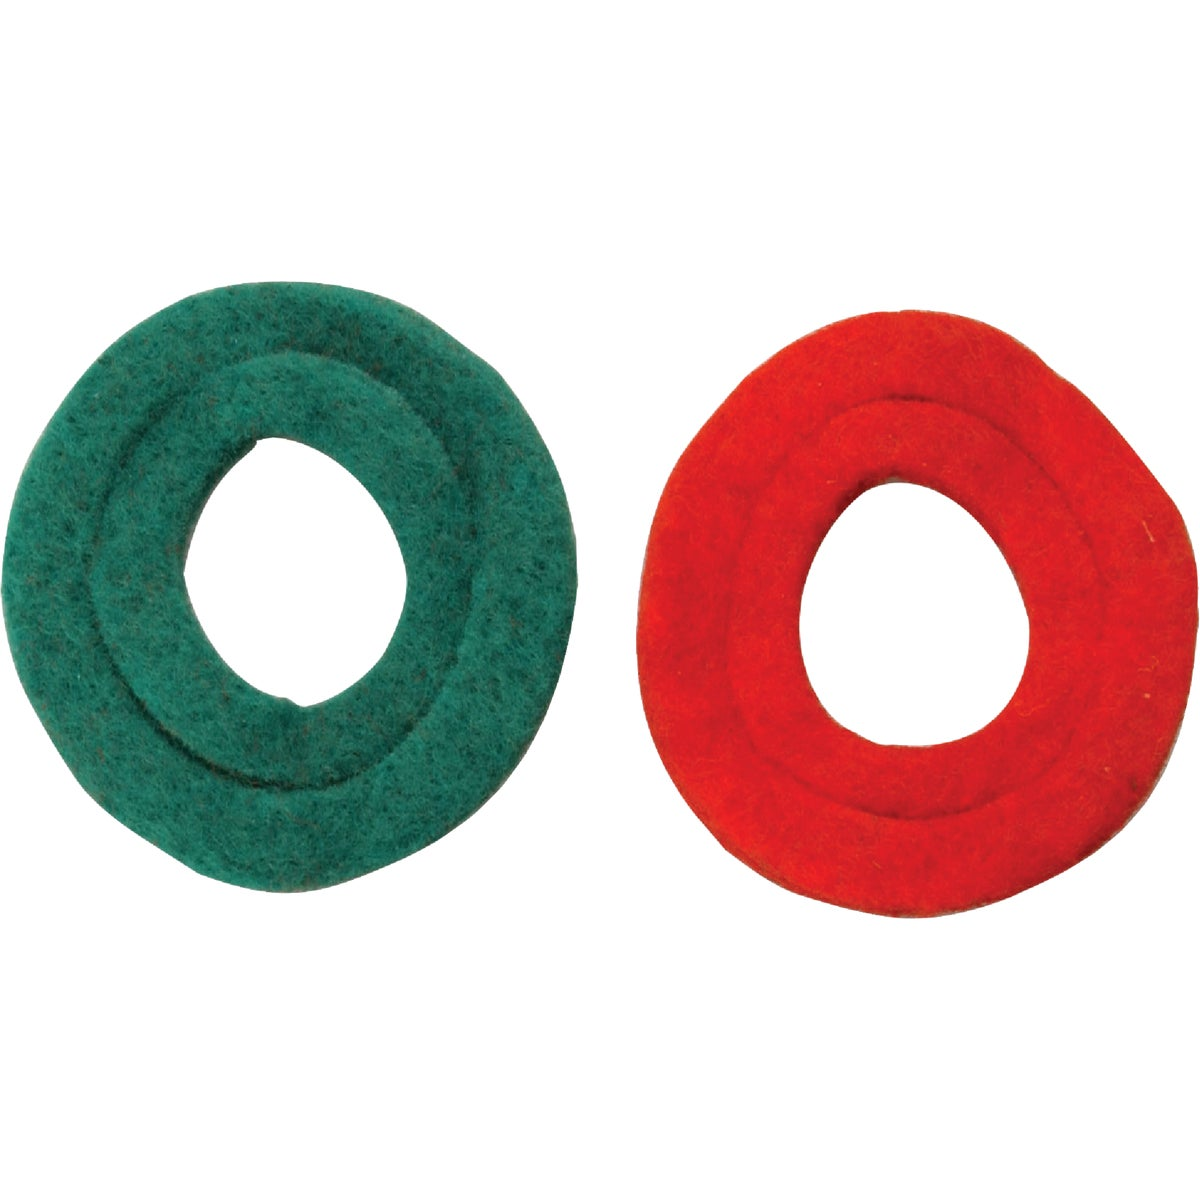 2PK BATTERY WASHERS - 46645 by Custom Accessories